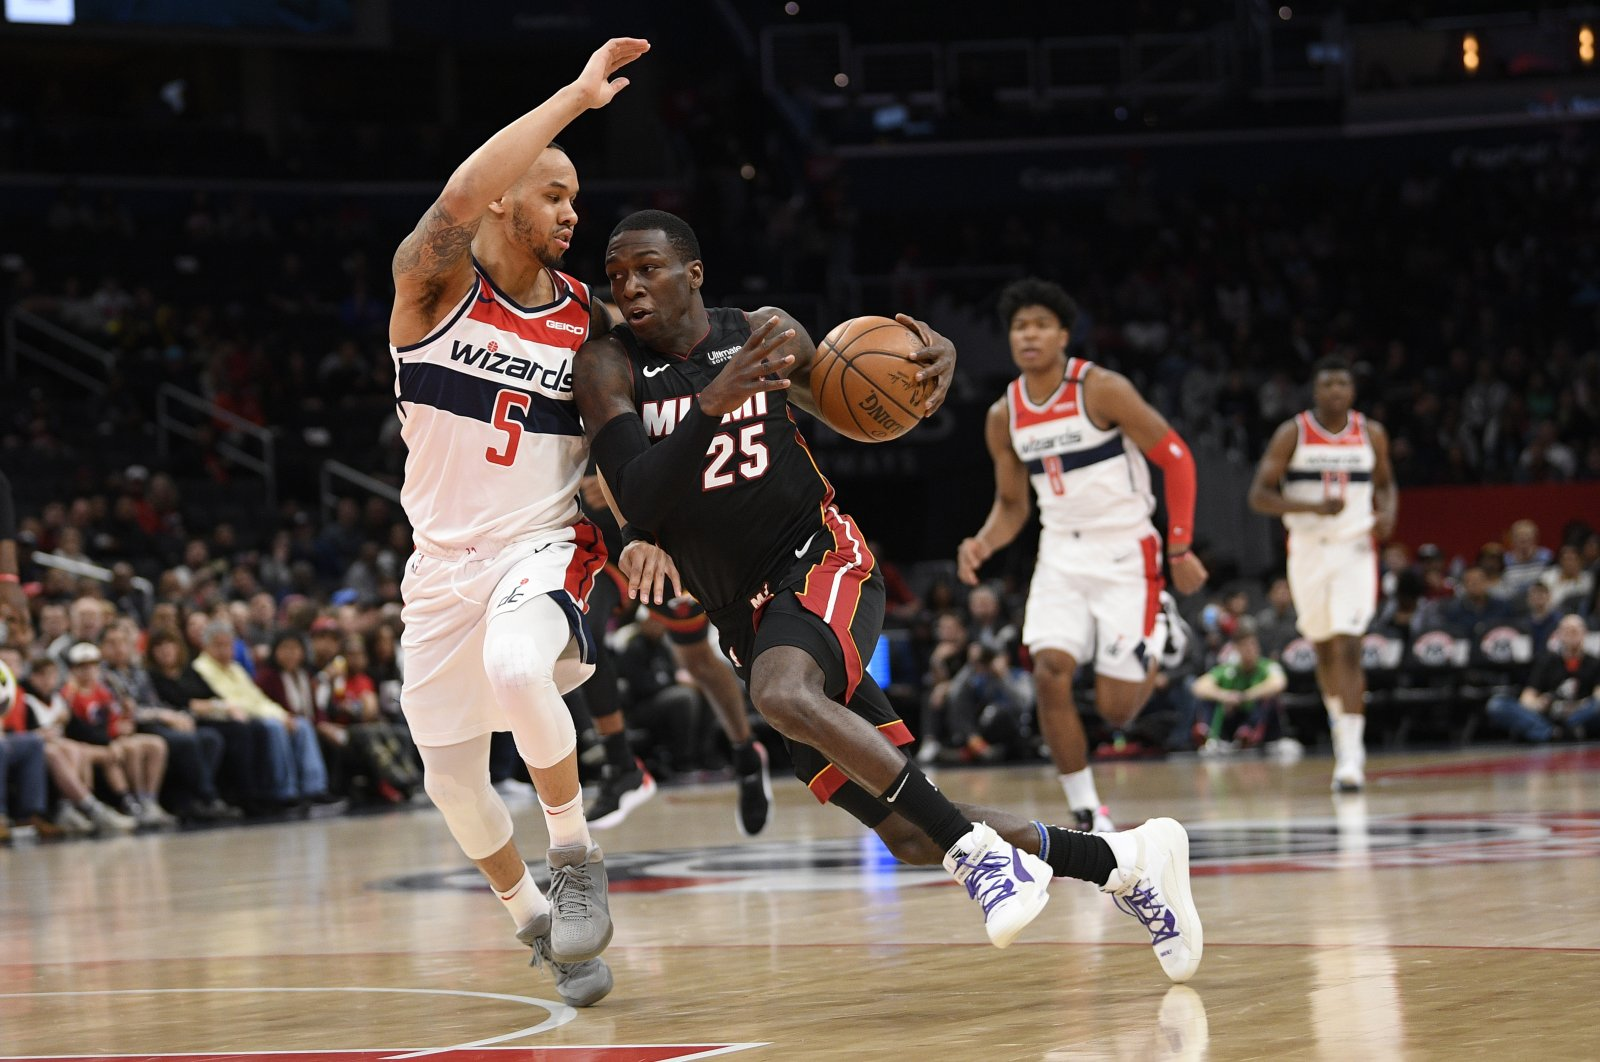 Miami Heat guard Kendrick Nunn (25) drives to the basket against Washington Wizards guard Shabazz Napier (5) during an NBA game, in Washington, D.C., U.S., March 8, 2020. (AP Photo)